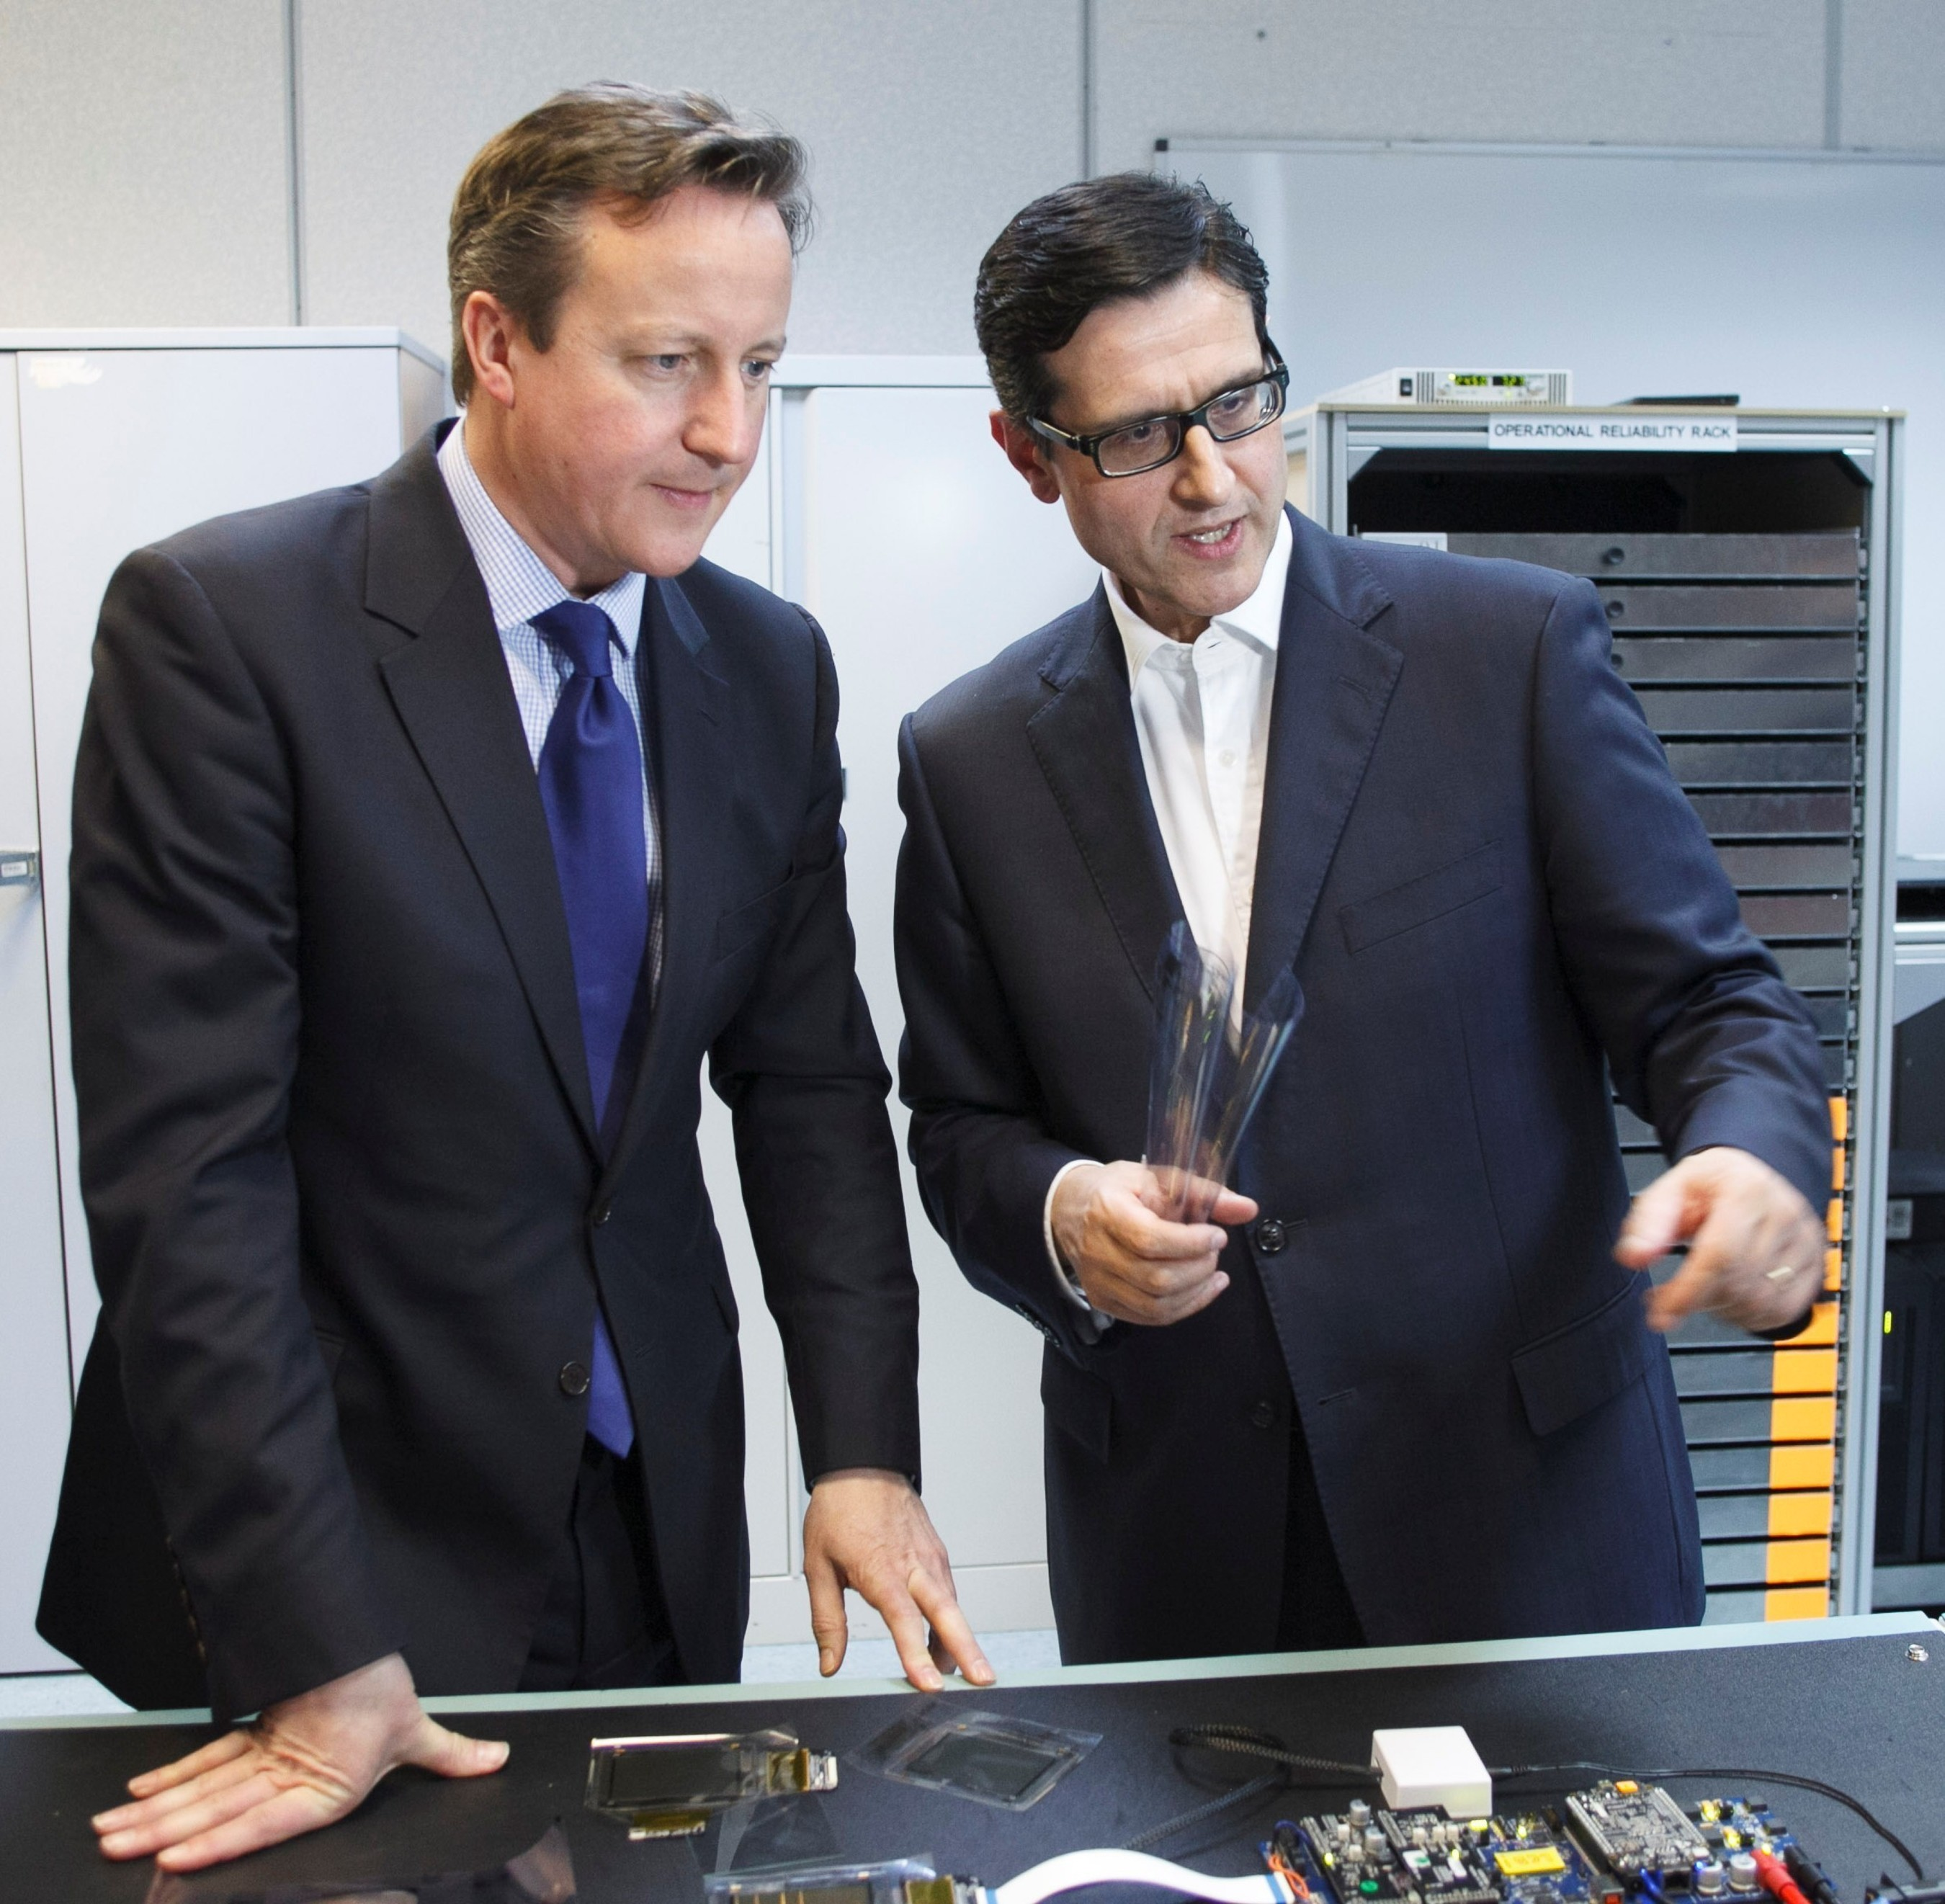 FlexEnable Welcomes British Prime Minister